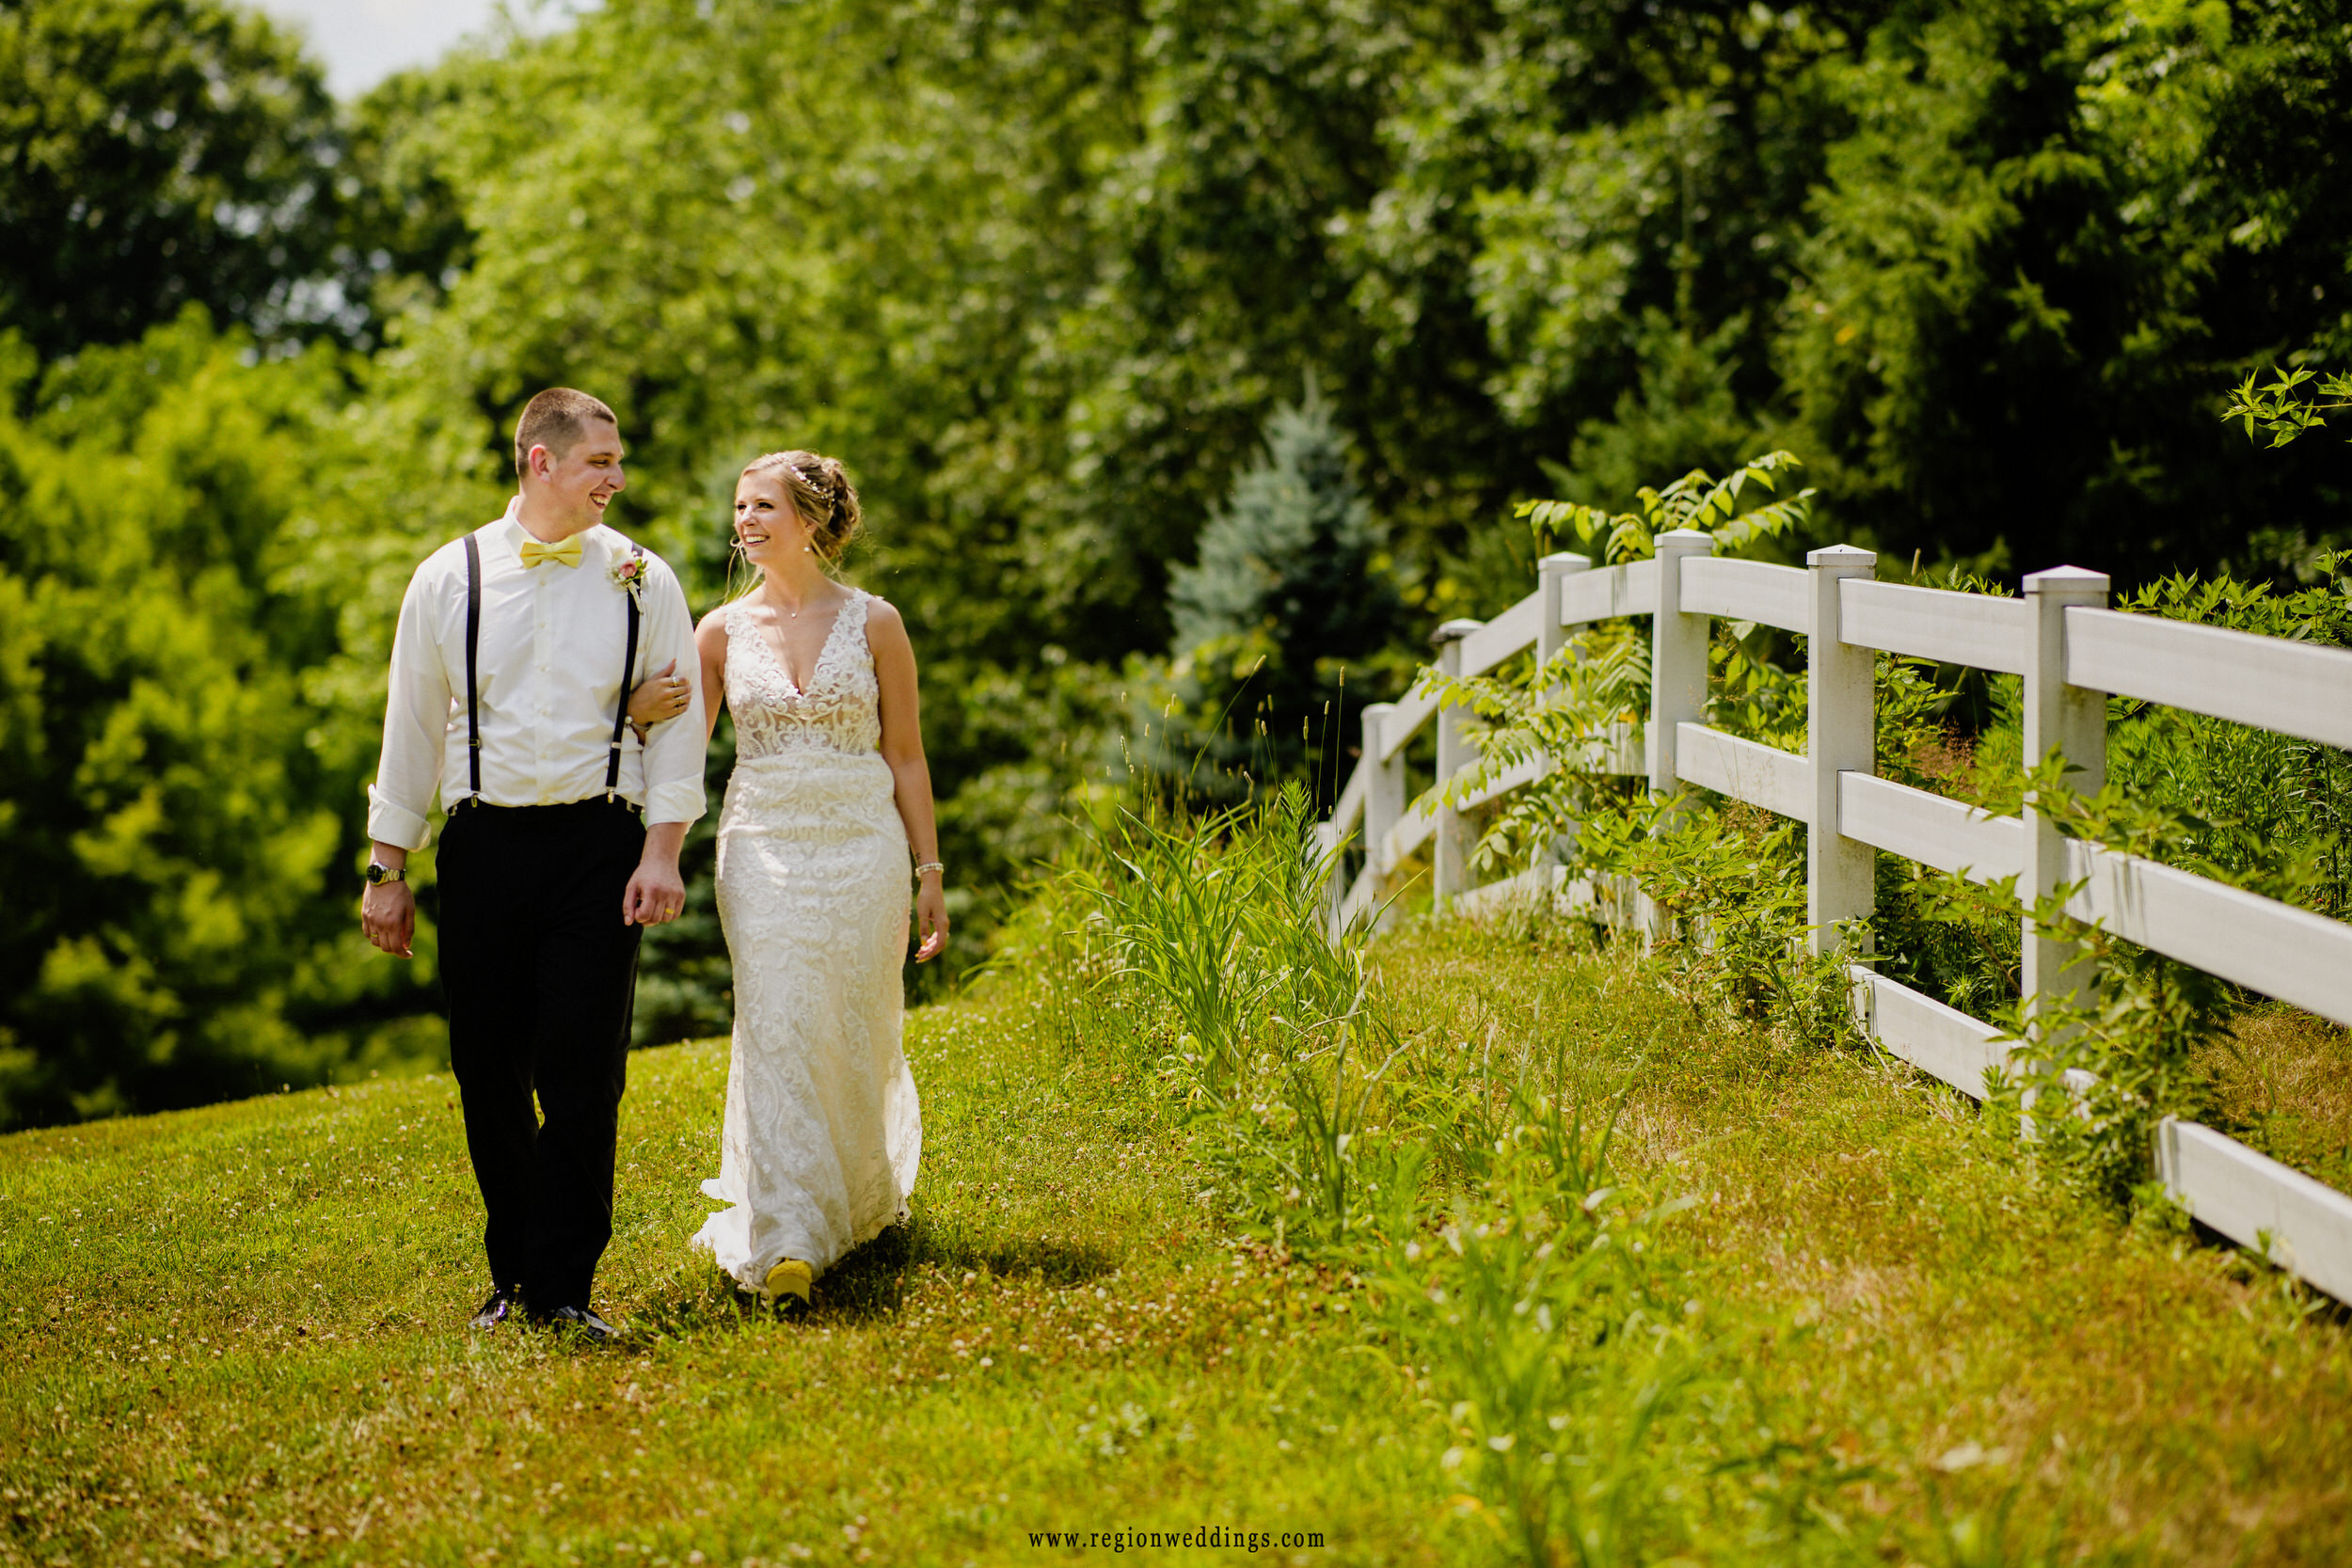 The bride and groom take a romantic stroll along the white picket fence at Heston Hills.